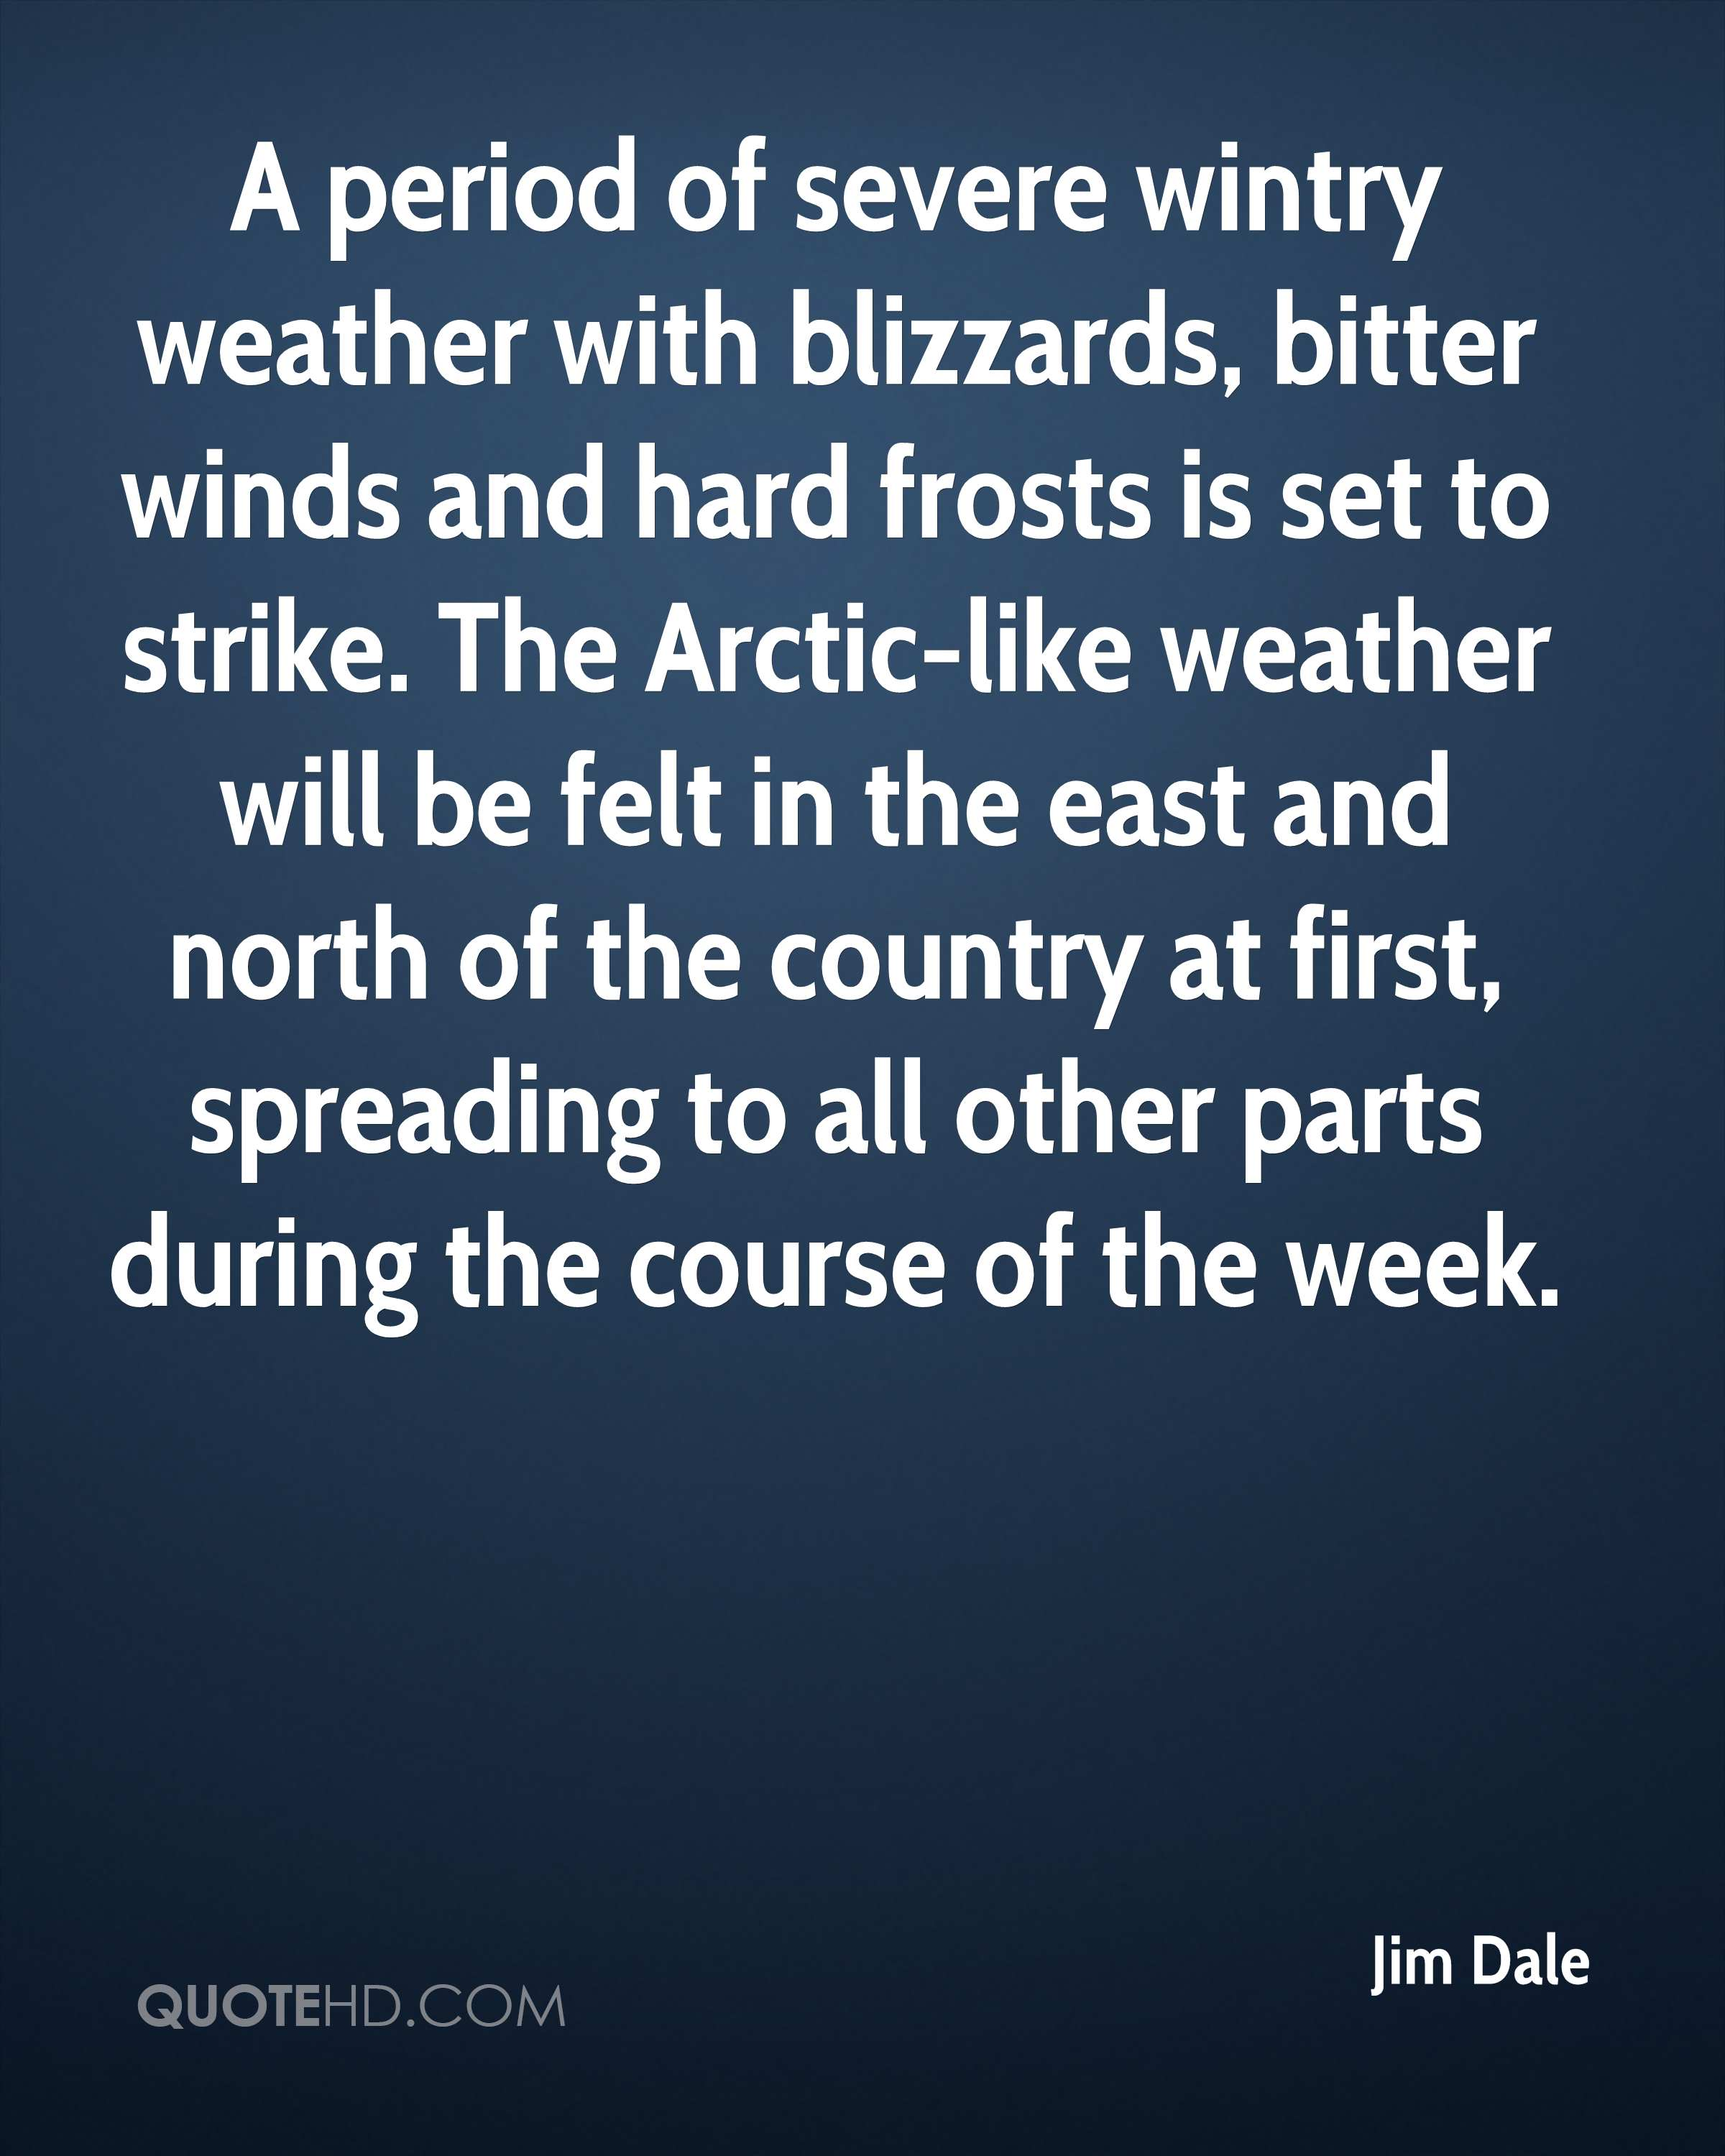 A period of severe wintry weather with blizzards, bitter winds and hard frosts is set to strike. The Arctic-like weather will be felt in the east and north of the country at first, spreading to all other parts during the course of the week.